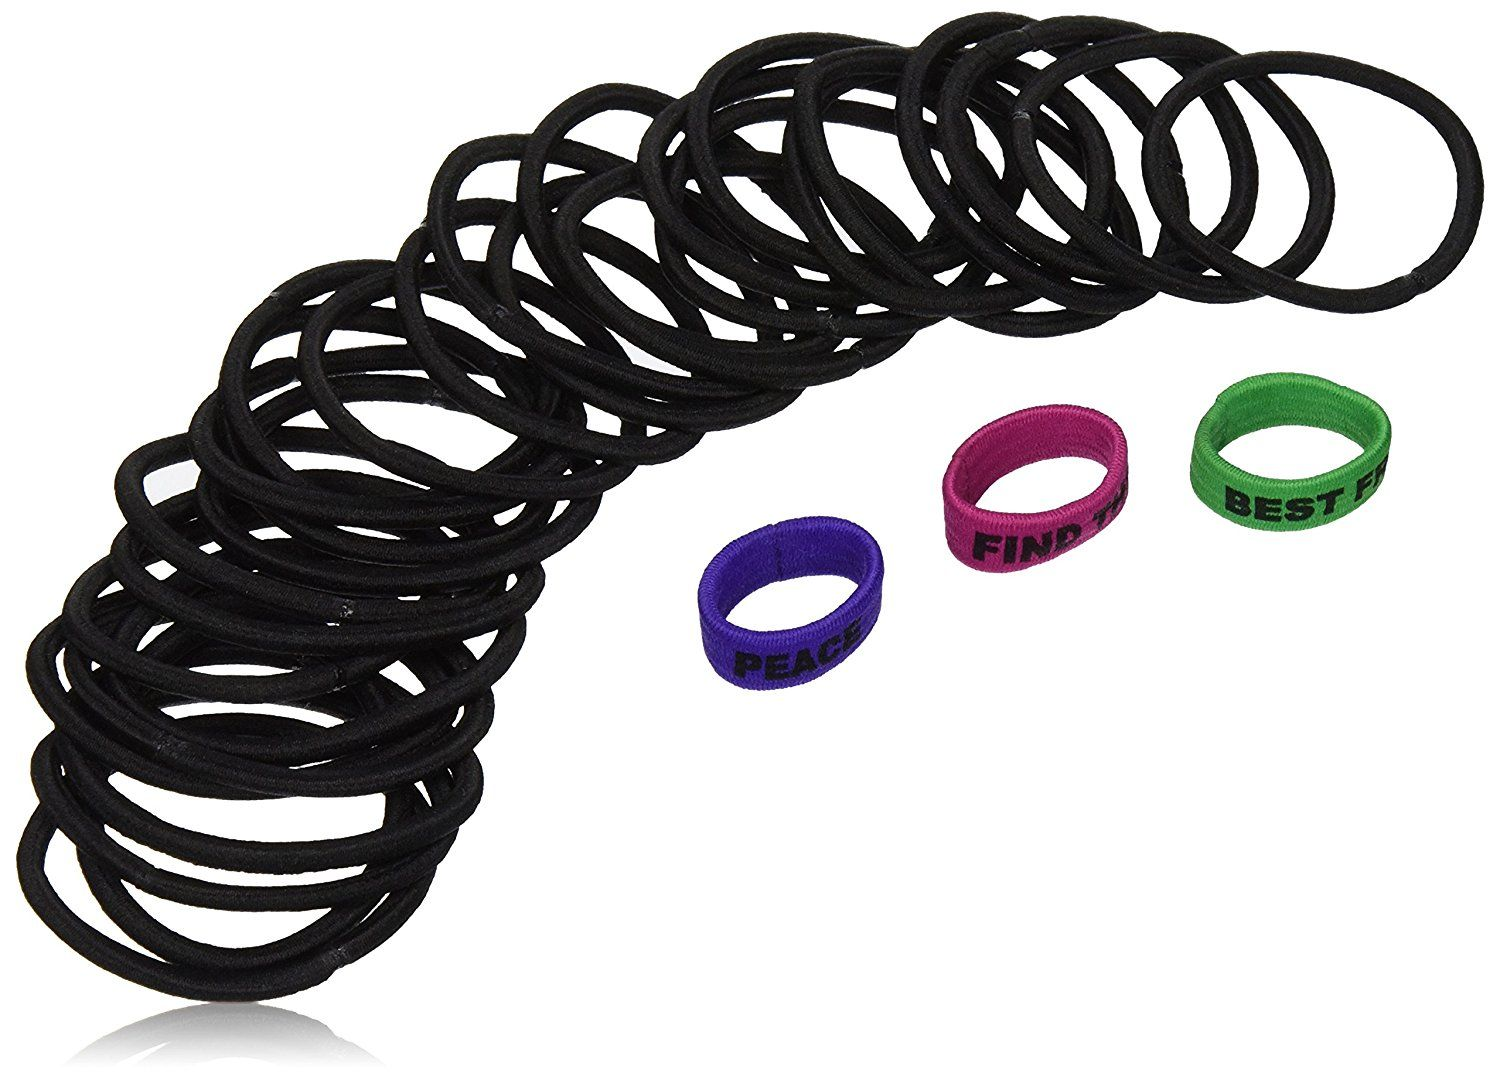 Vidal Sassoon Braided Elastics With 3 Expression Bands, 33 Count ** Check out this great product.